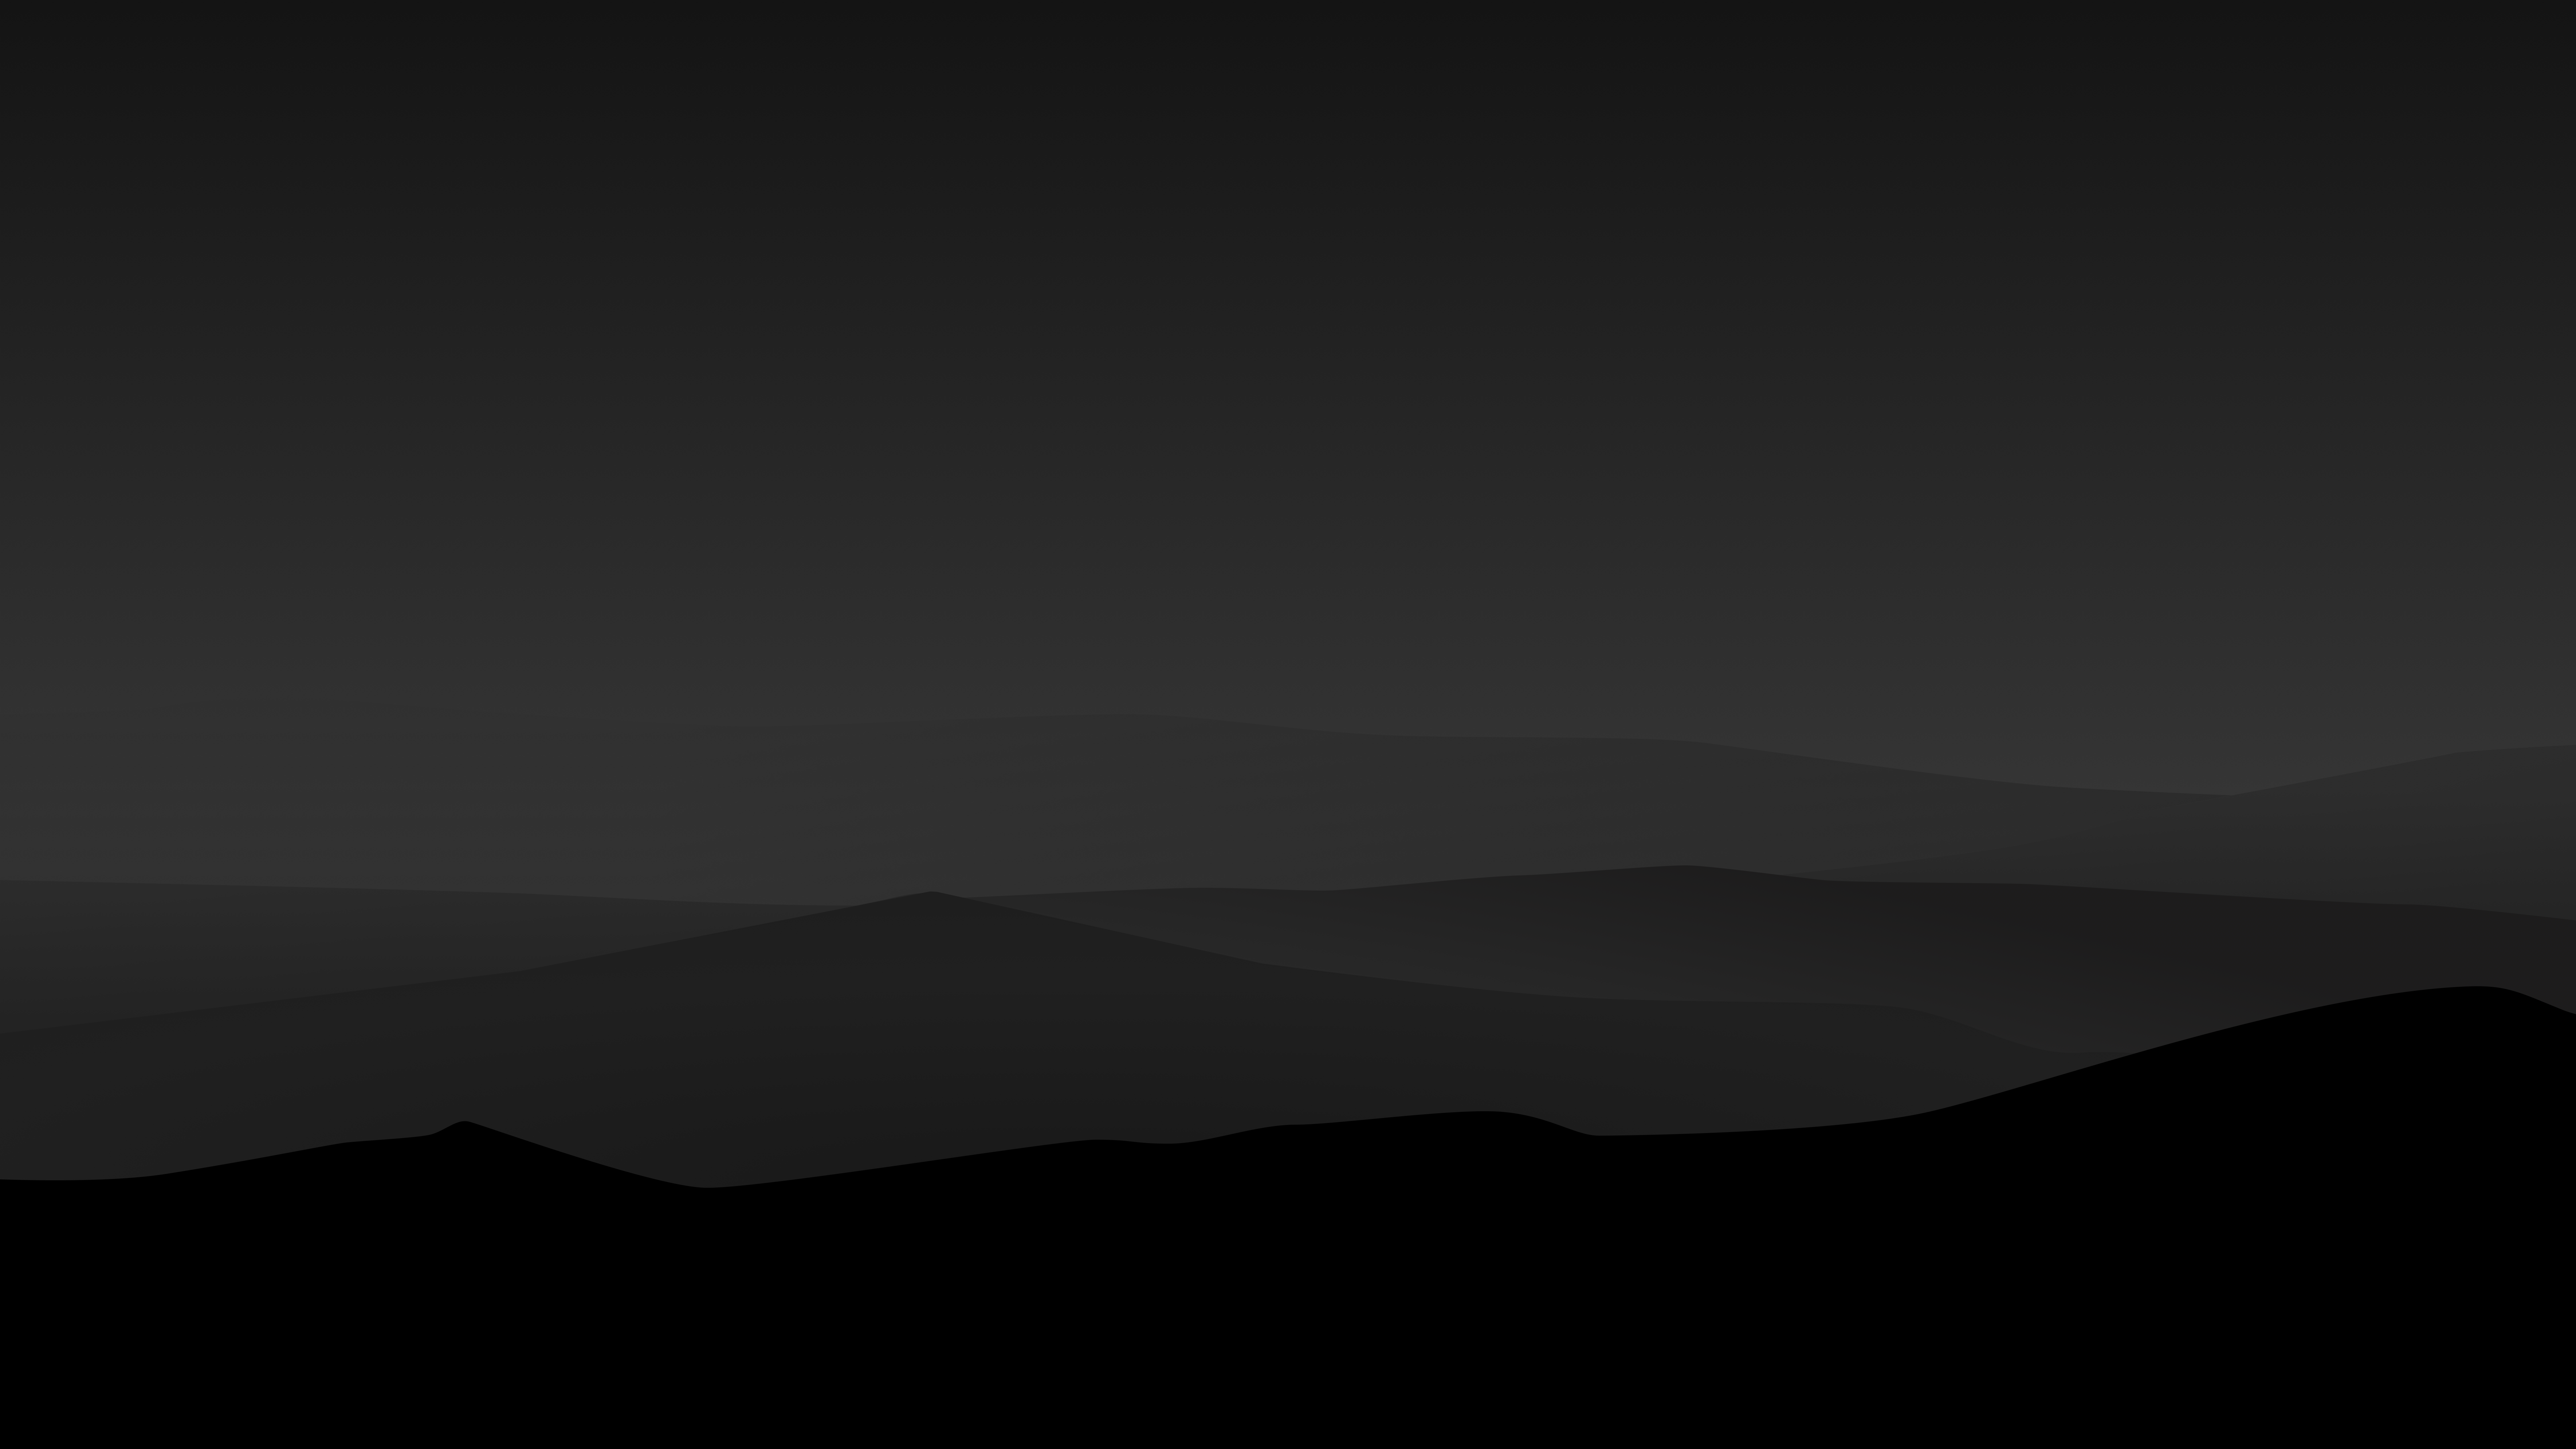 Minimalist Black And White Pc Wallpaper